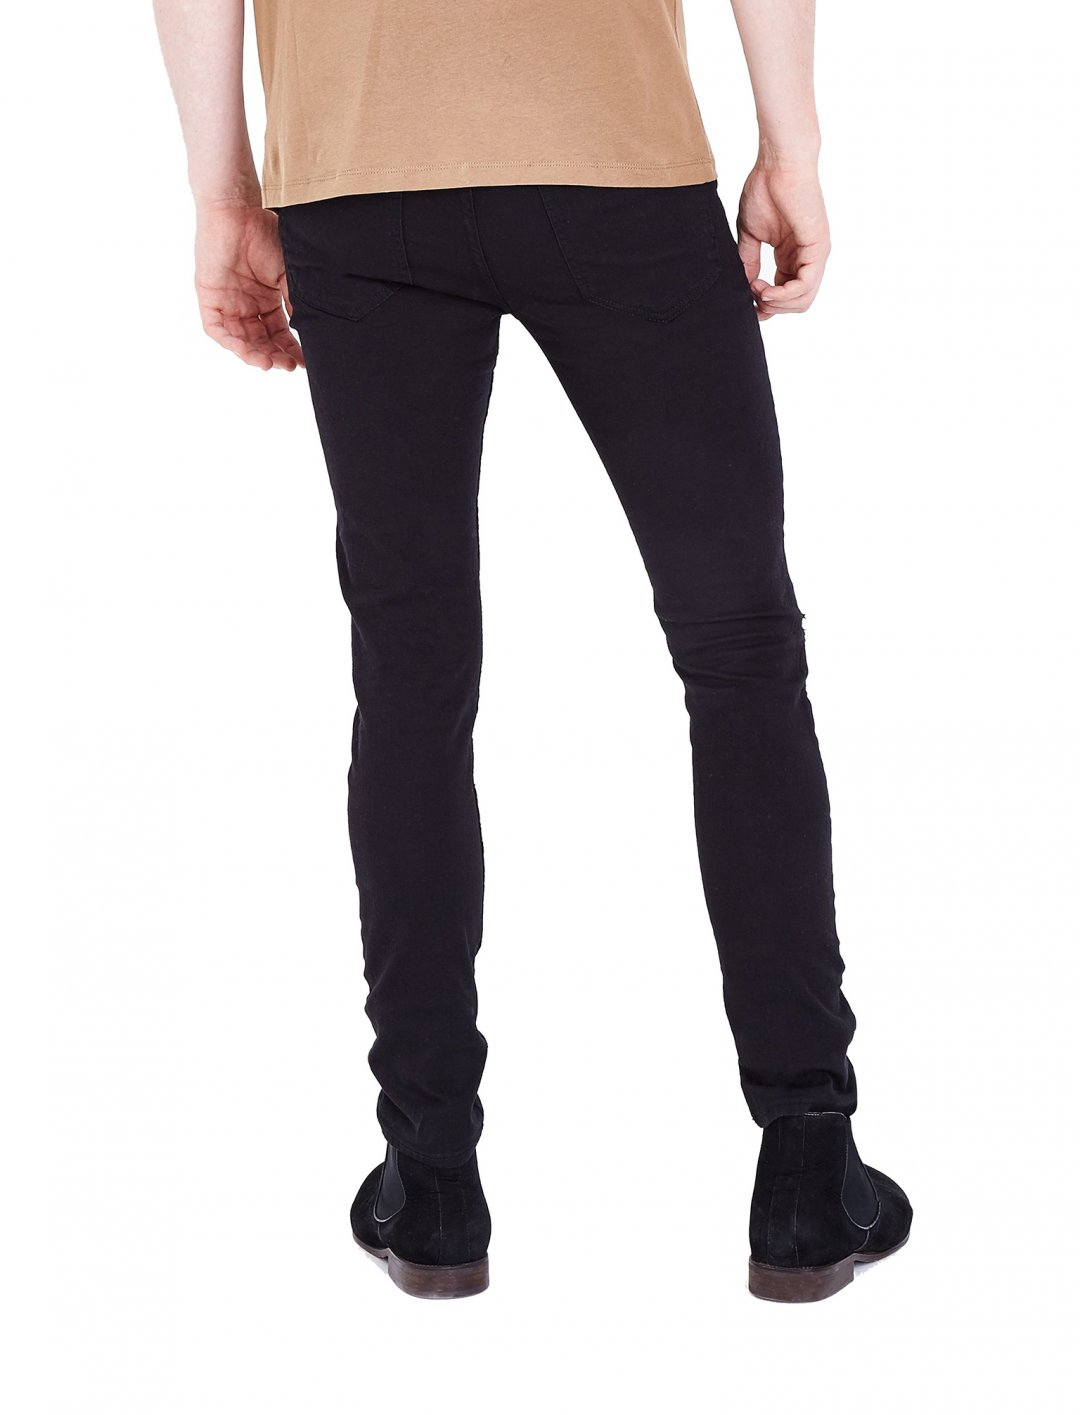 Ripped Knee Skinny Jeans Clothing New Look